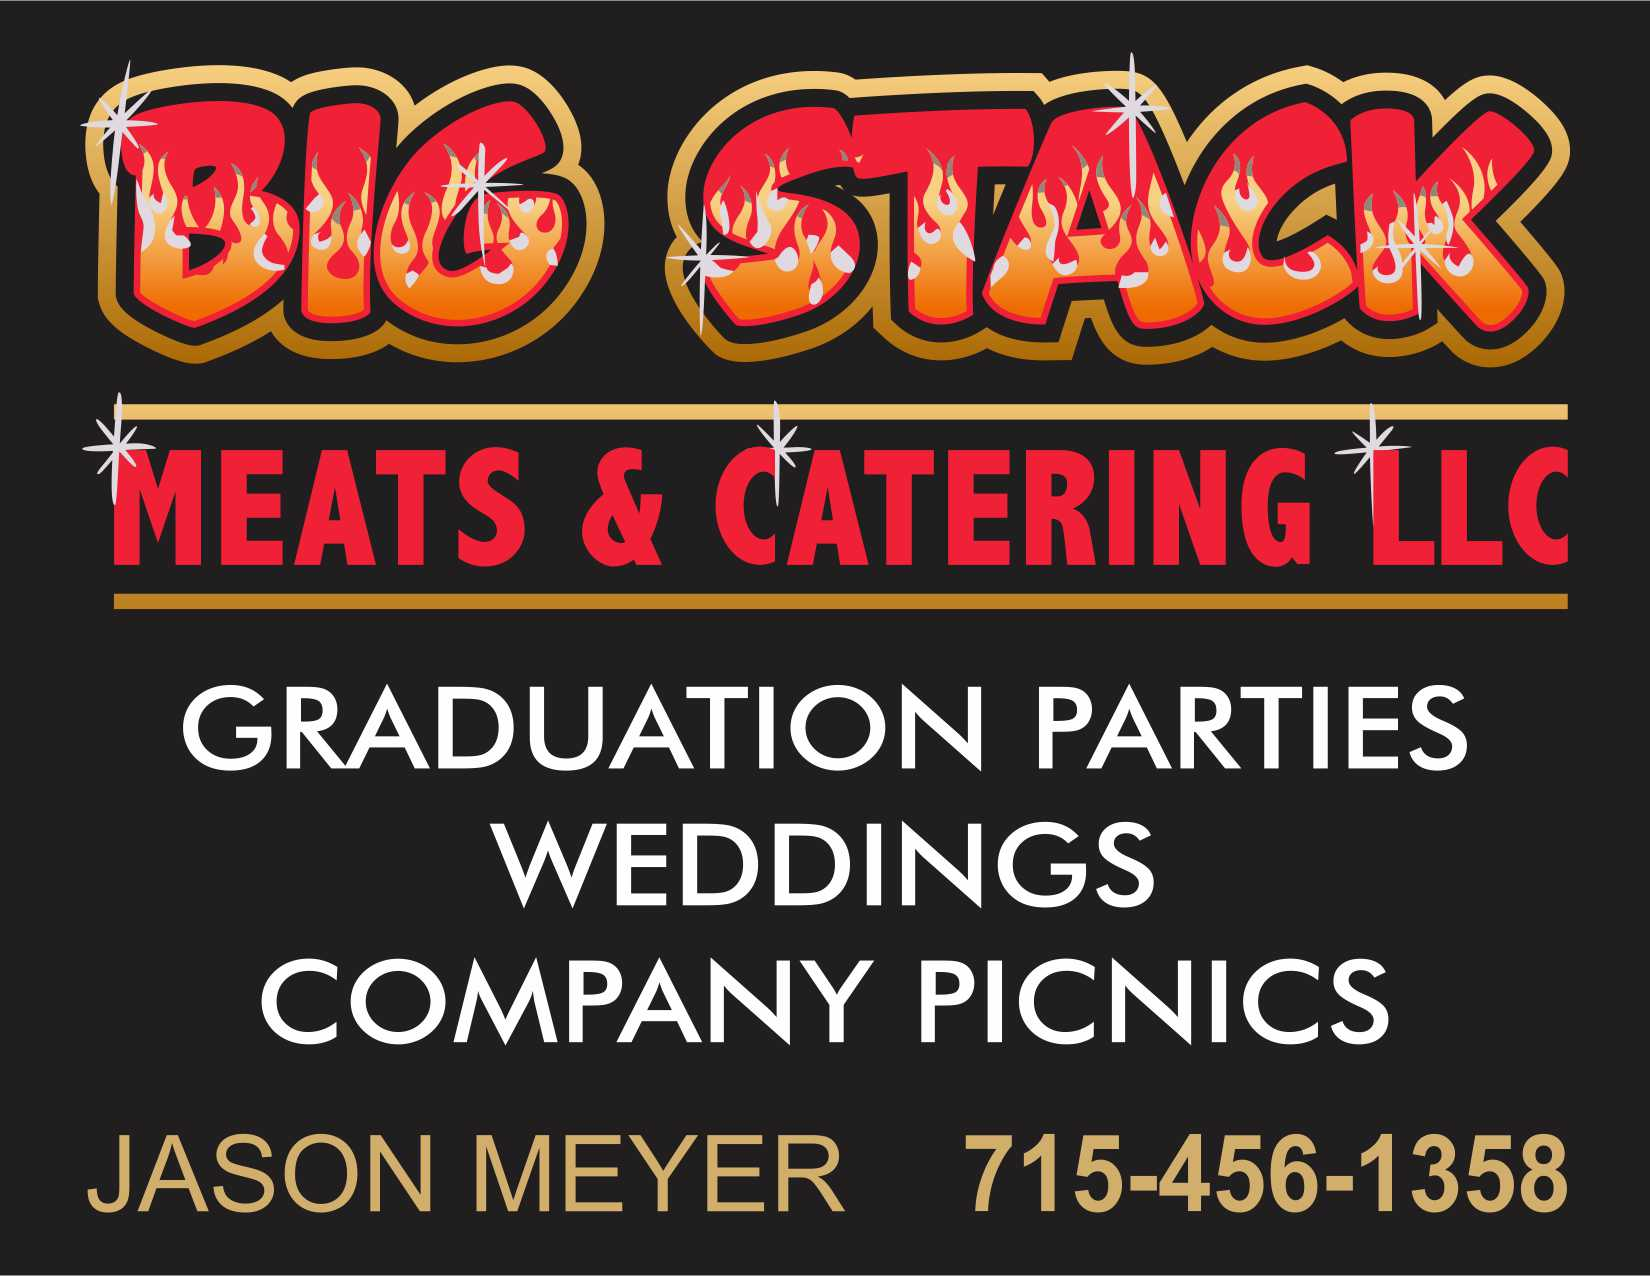 Big Stack Meats & Catering LLC